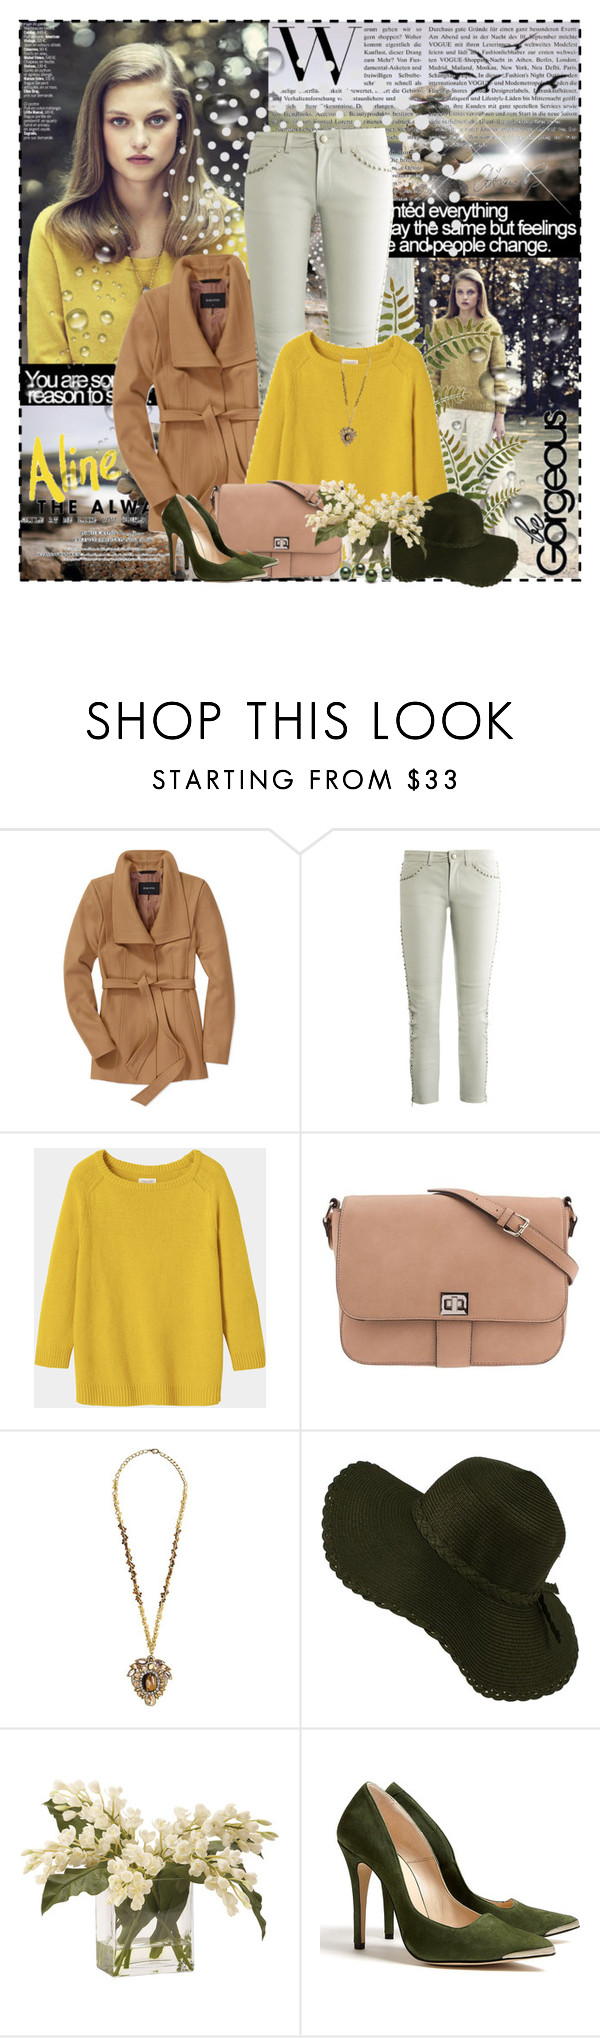 """""""Give me some sunshine..."""" by aselkaliyeva ❤ liked on Polyvore featuring Babaton, Isabel Marant, Toast, Parfois, Suzanna Dai, Ethan Allen and Ganni"""